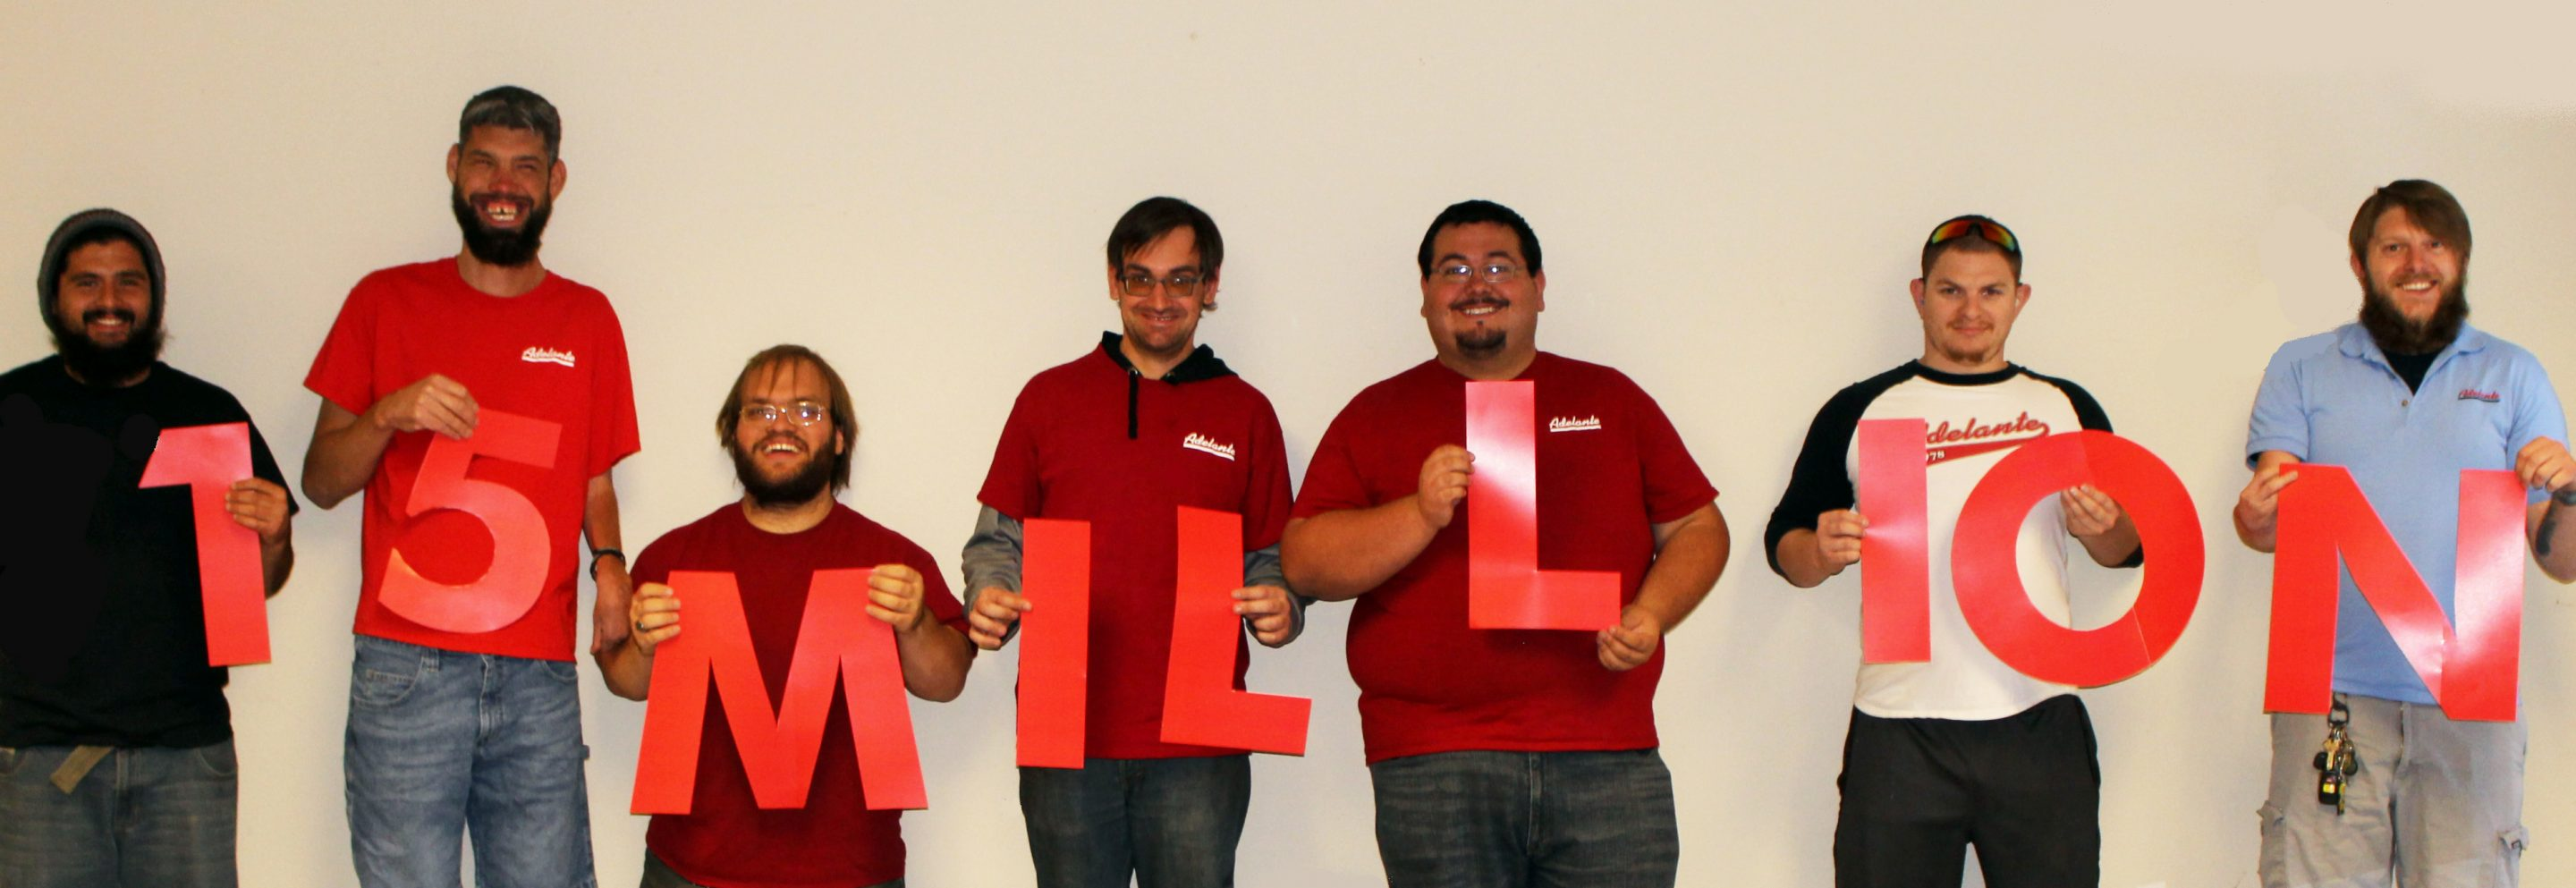 "Seven Bulk Printing and Mailing employes hold red numbers and letters that read ""15 MILLION."""